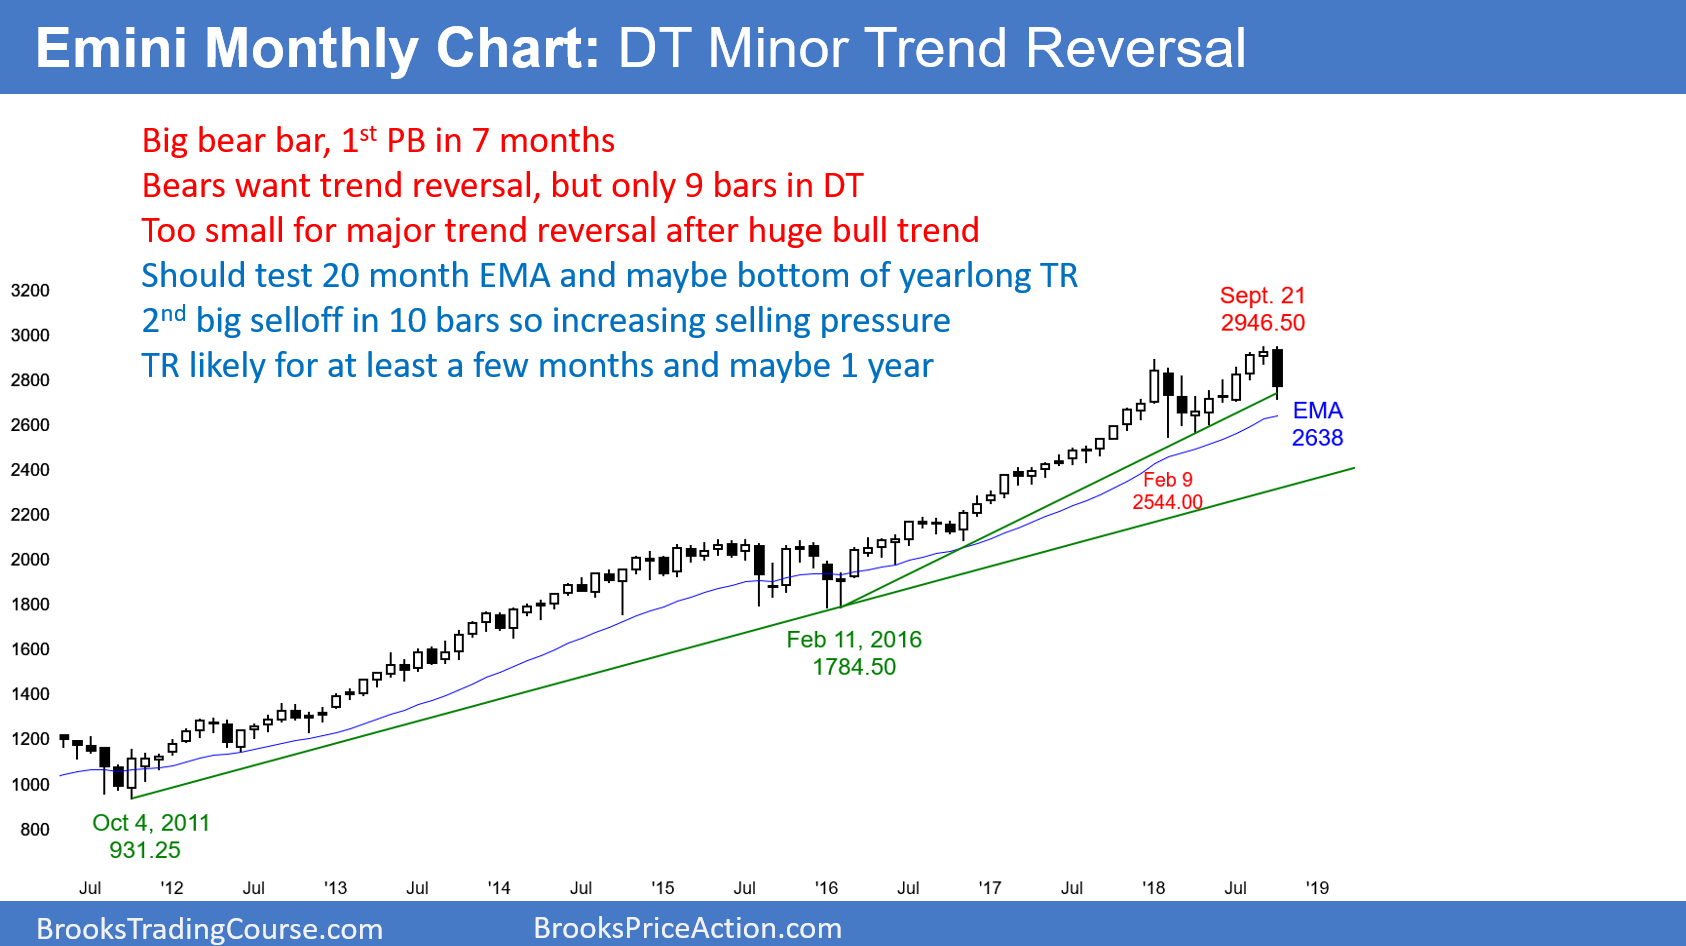 Emini Monthly Chart DT Minor Trend Reversal